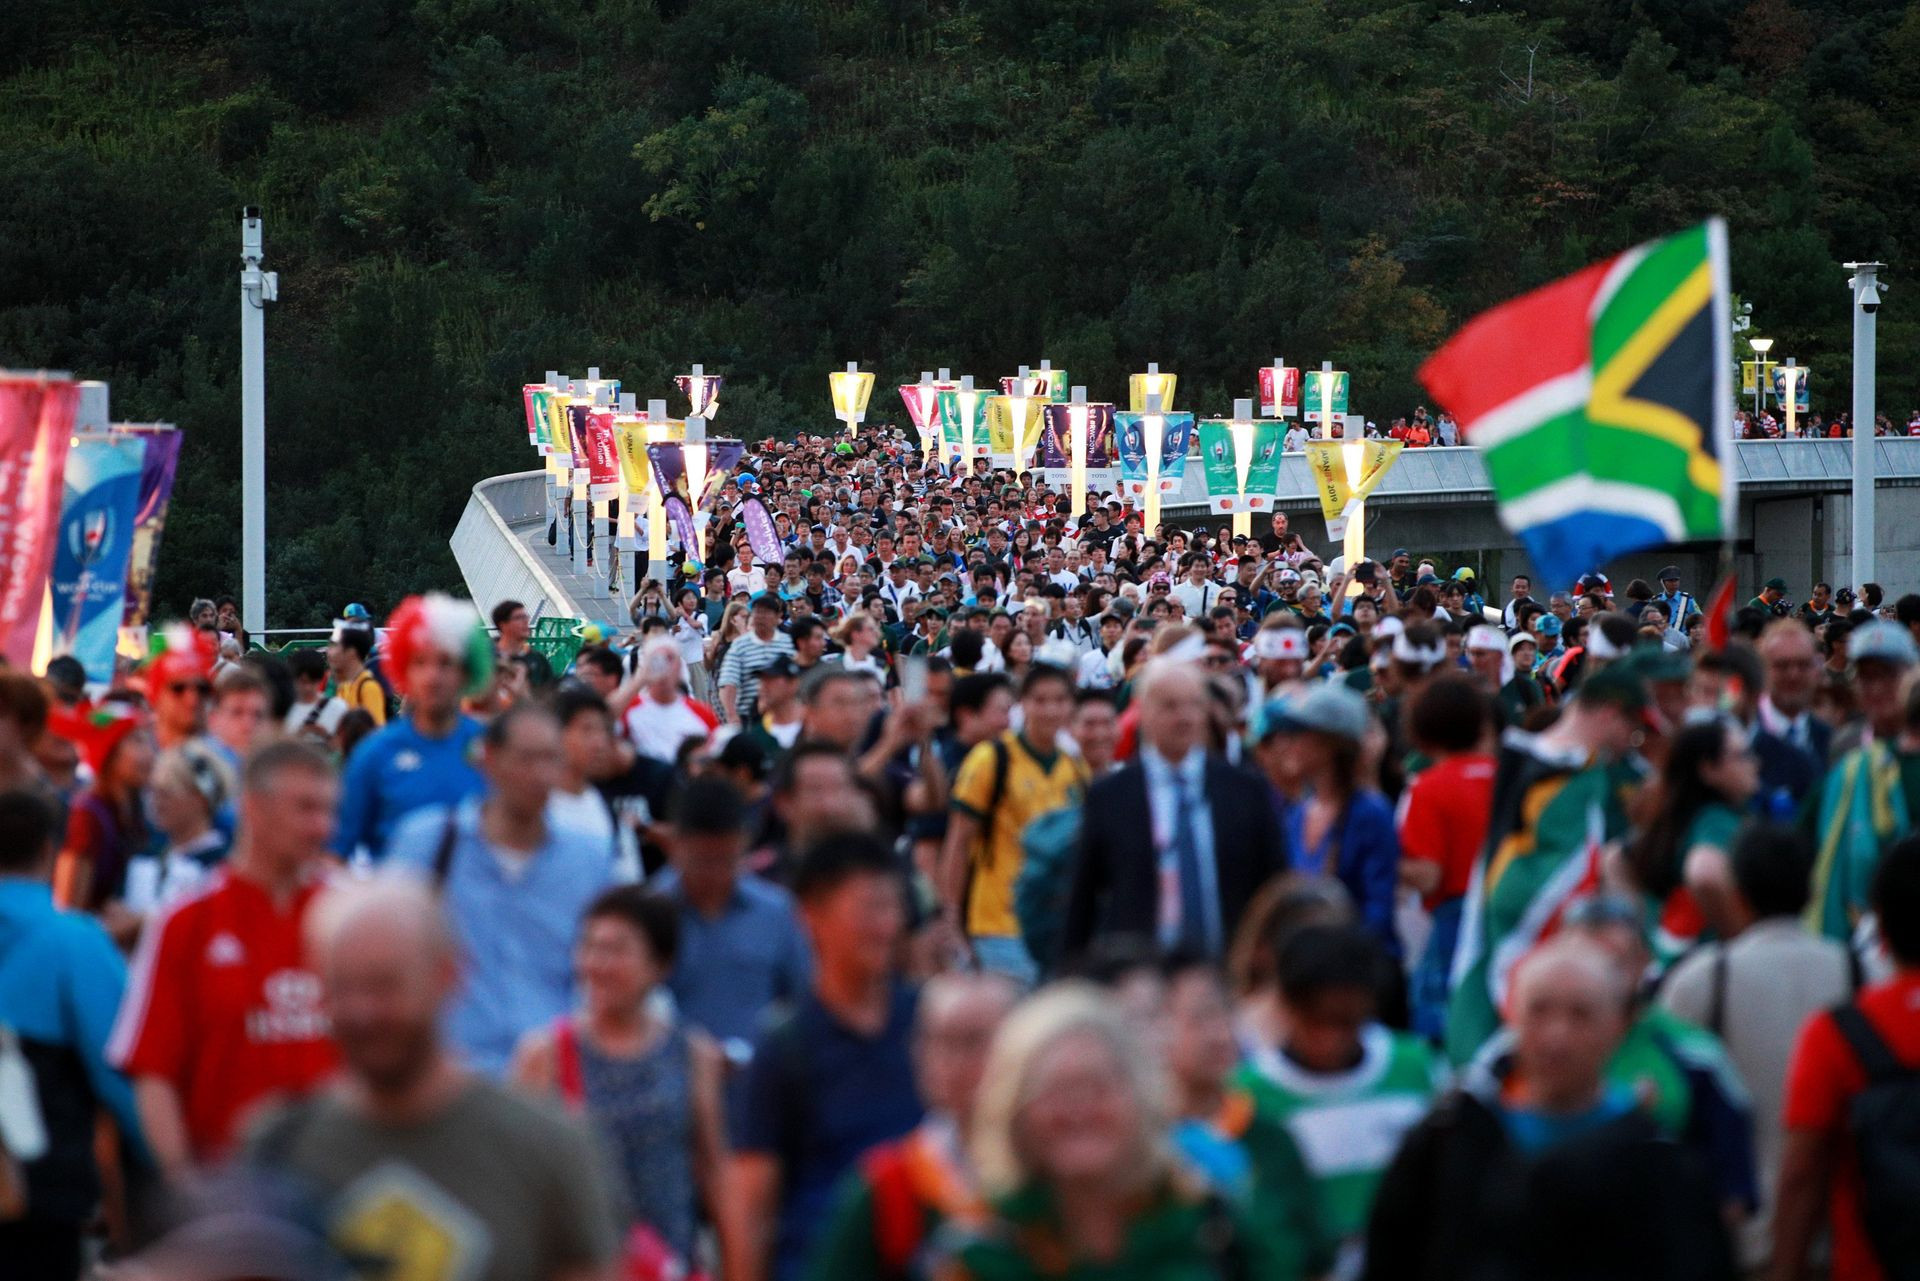 World Rugby have announced record attendance figures for the fanzones at the World Cup ©World Rugby